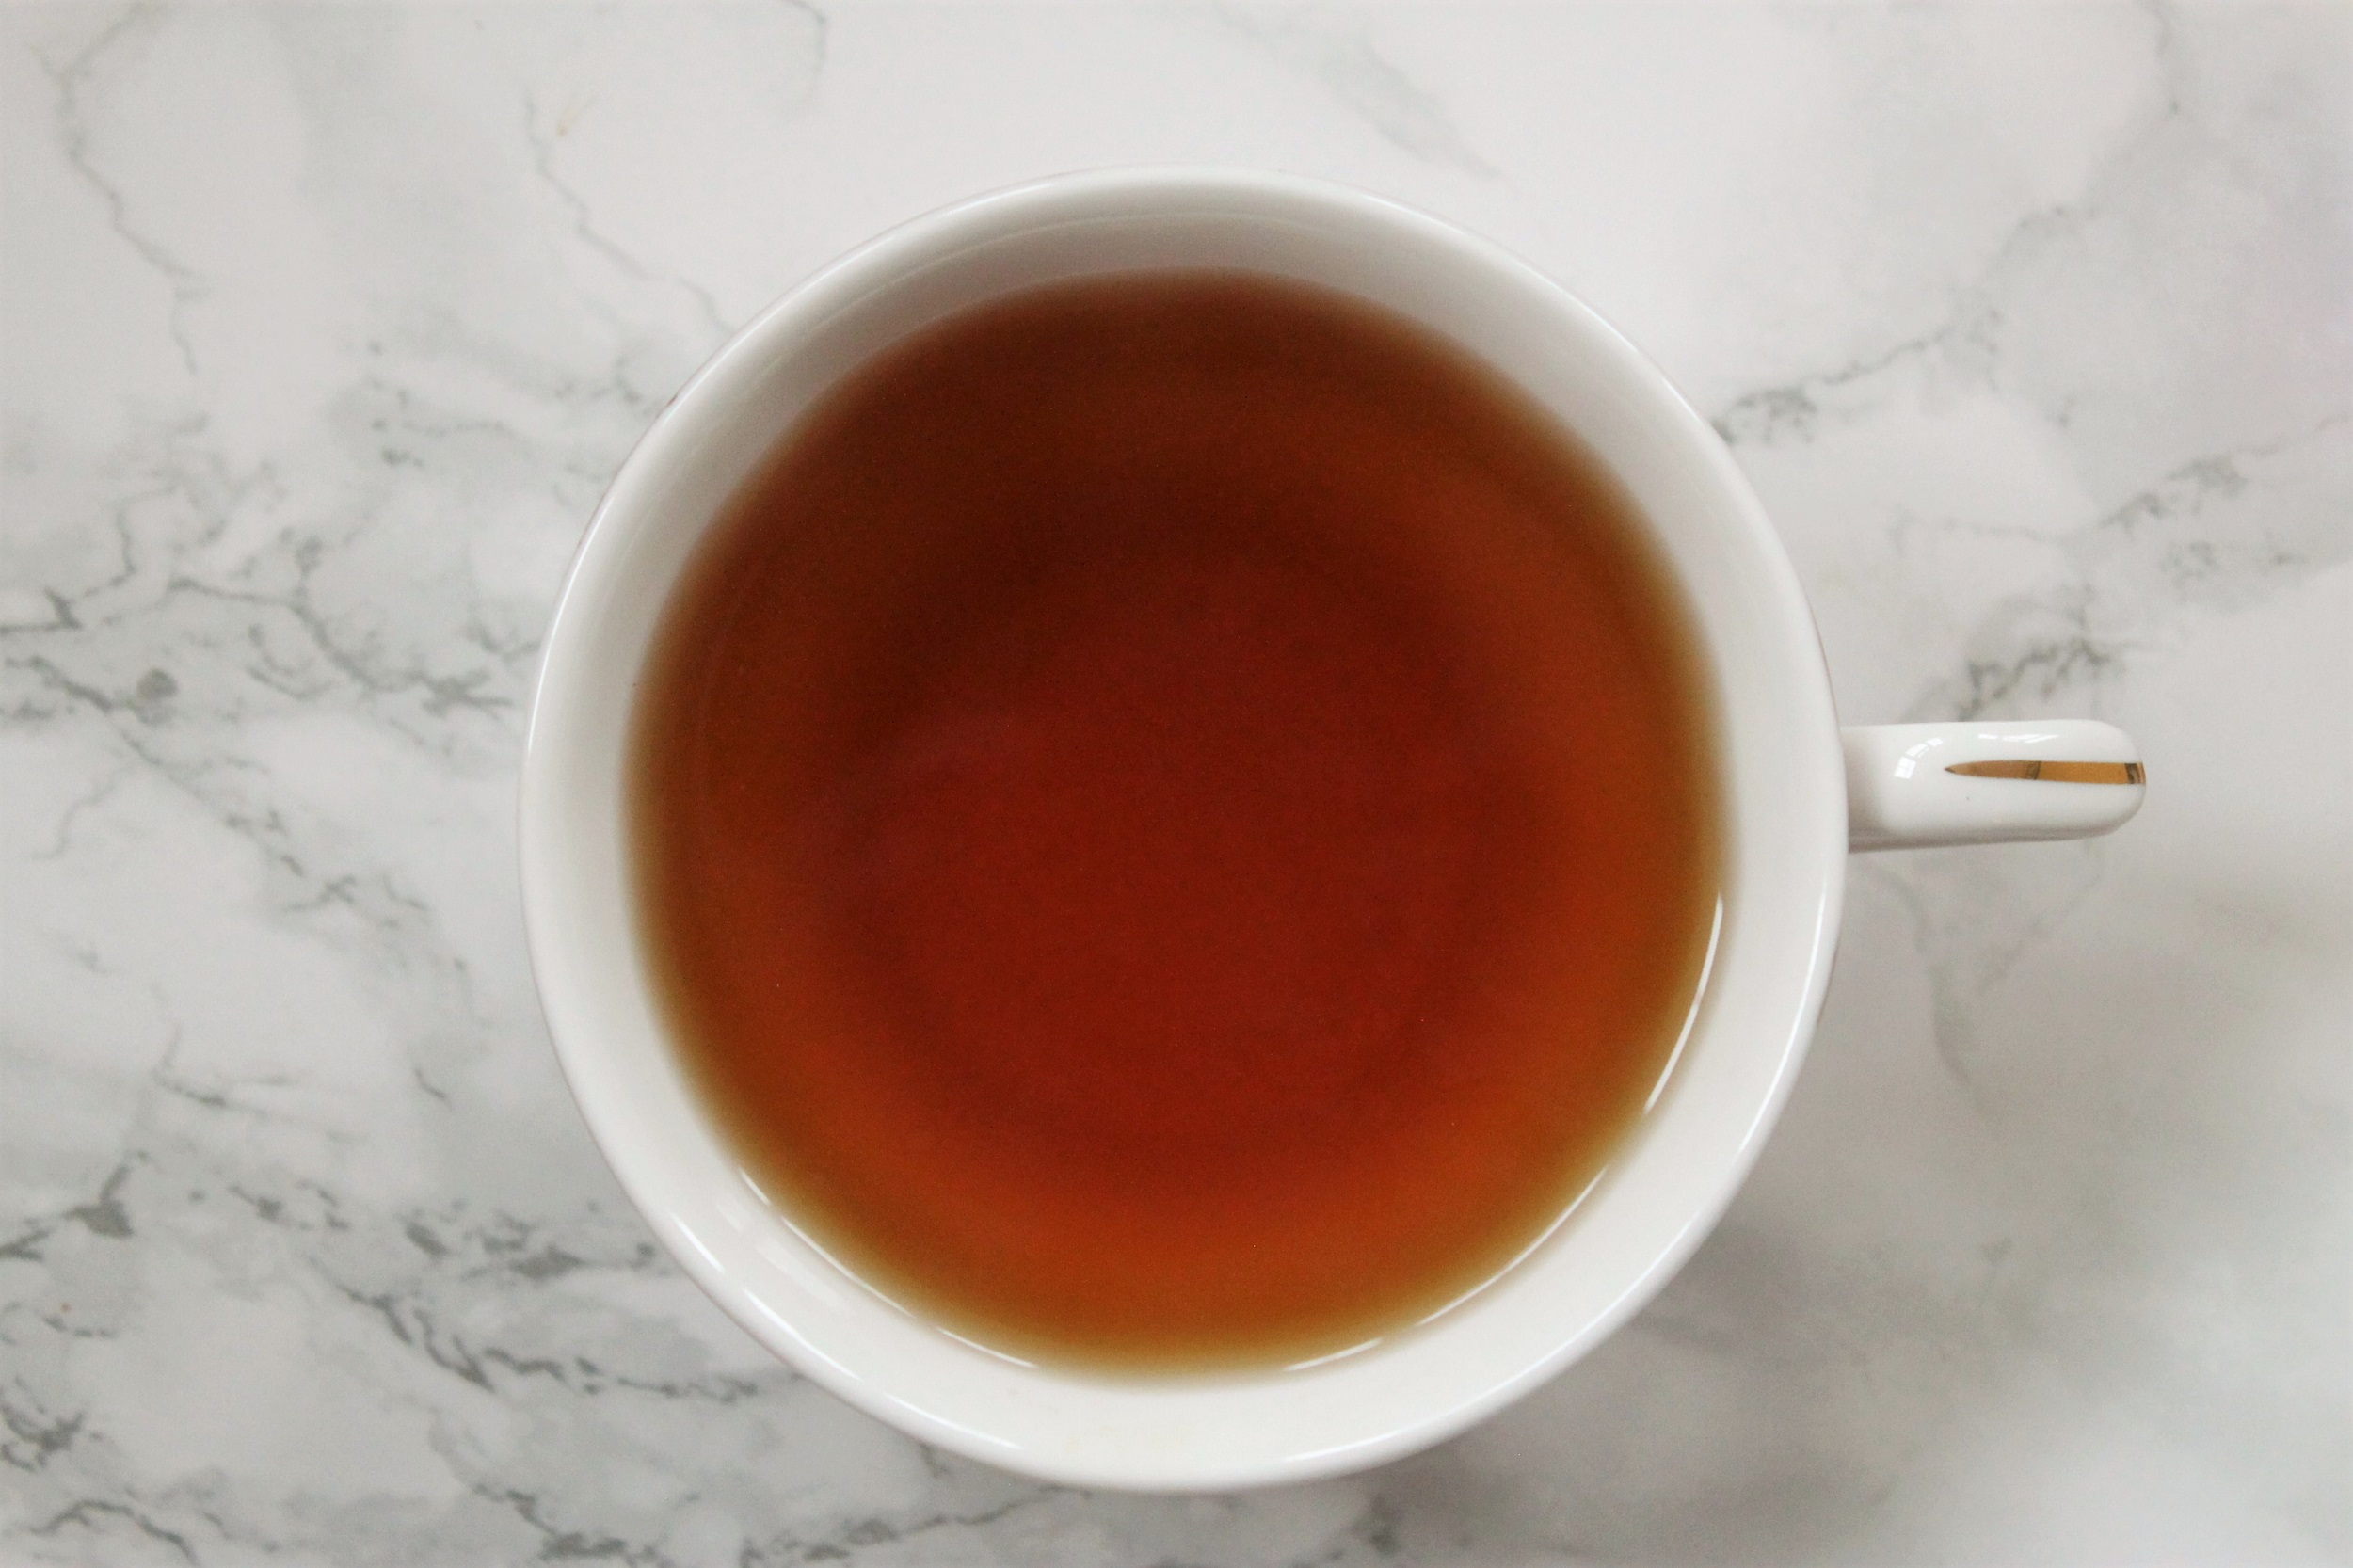 brown cinnamon tea in white teacup